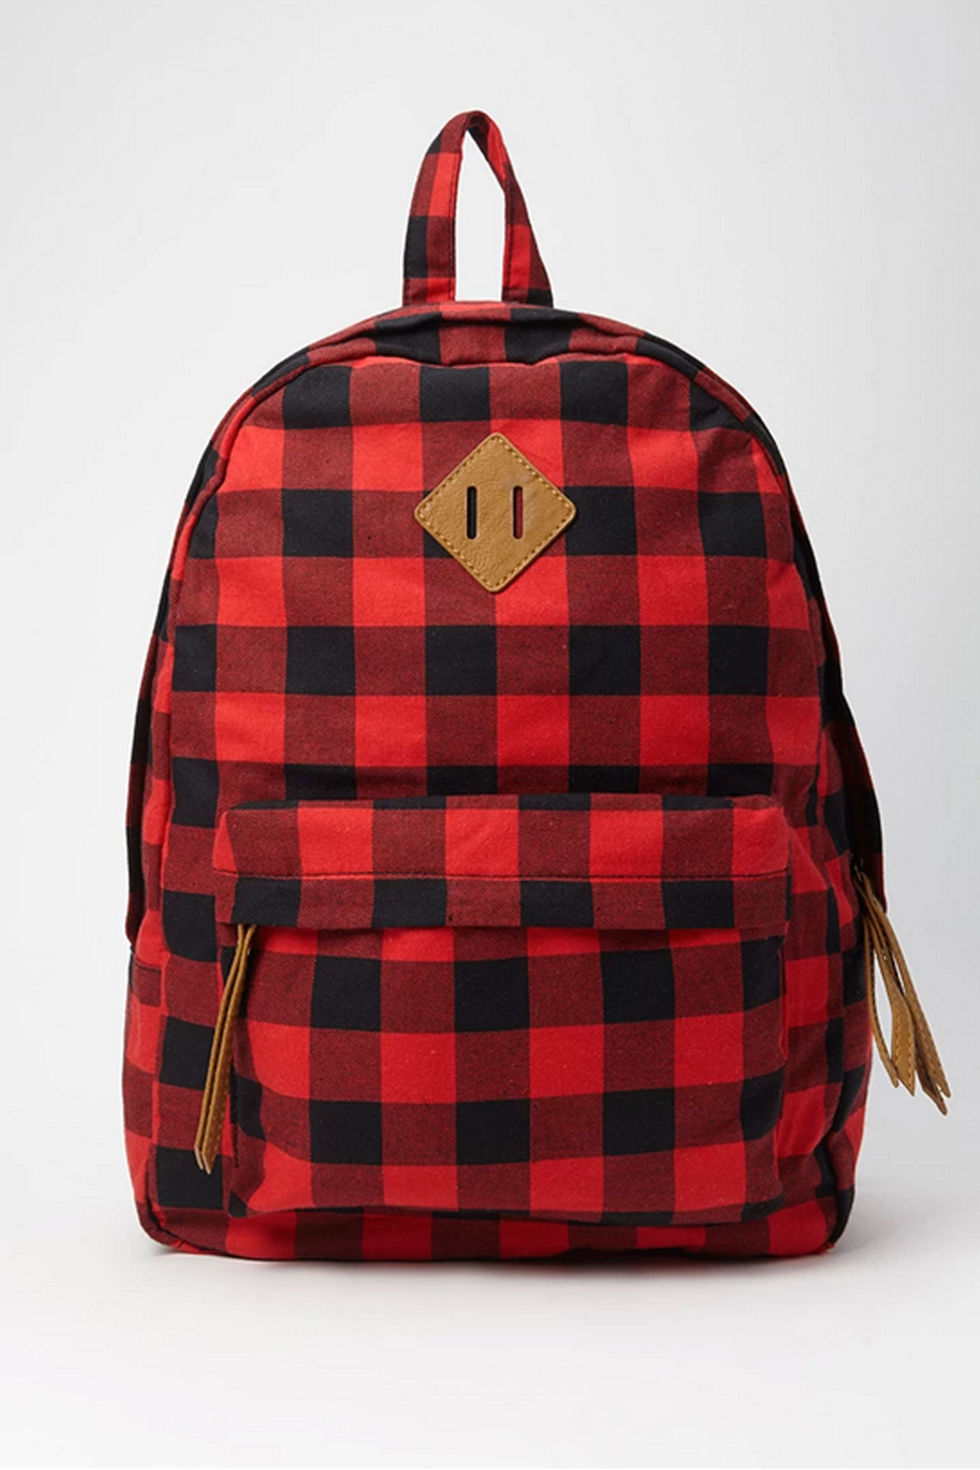 Backpacks For Girls In High School PH2KxByE